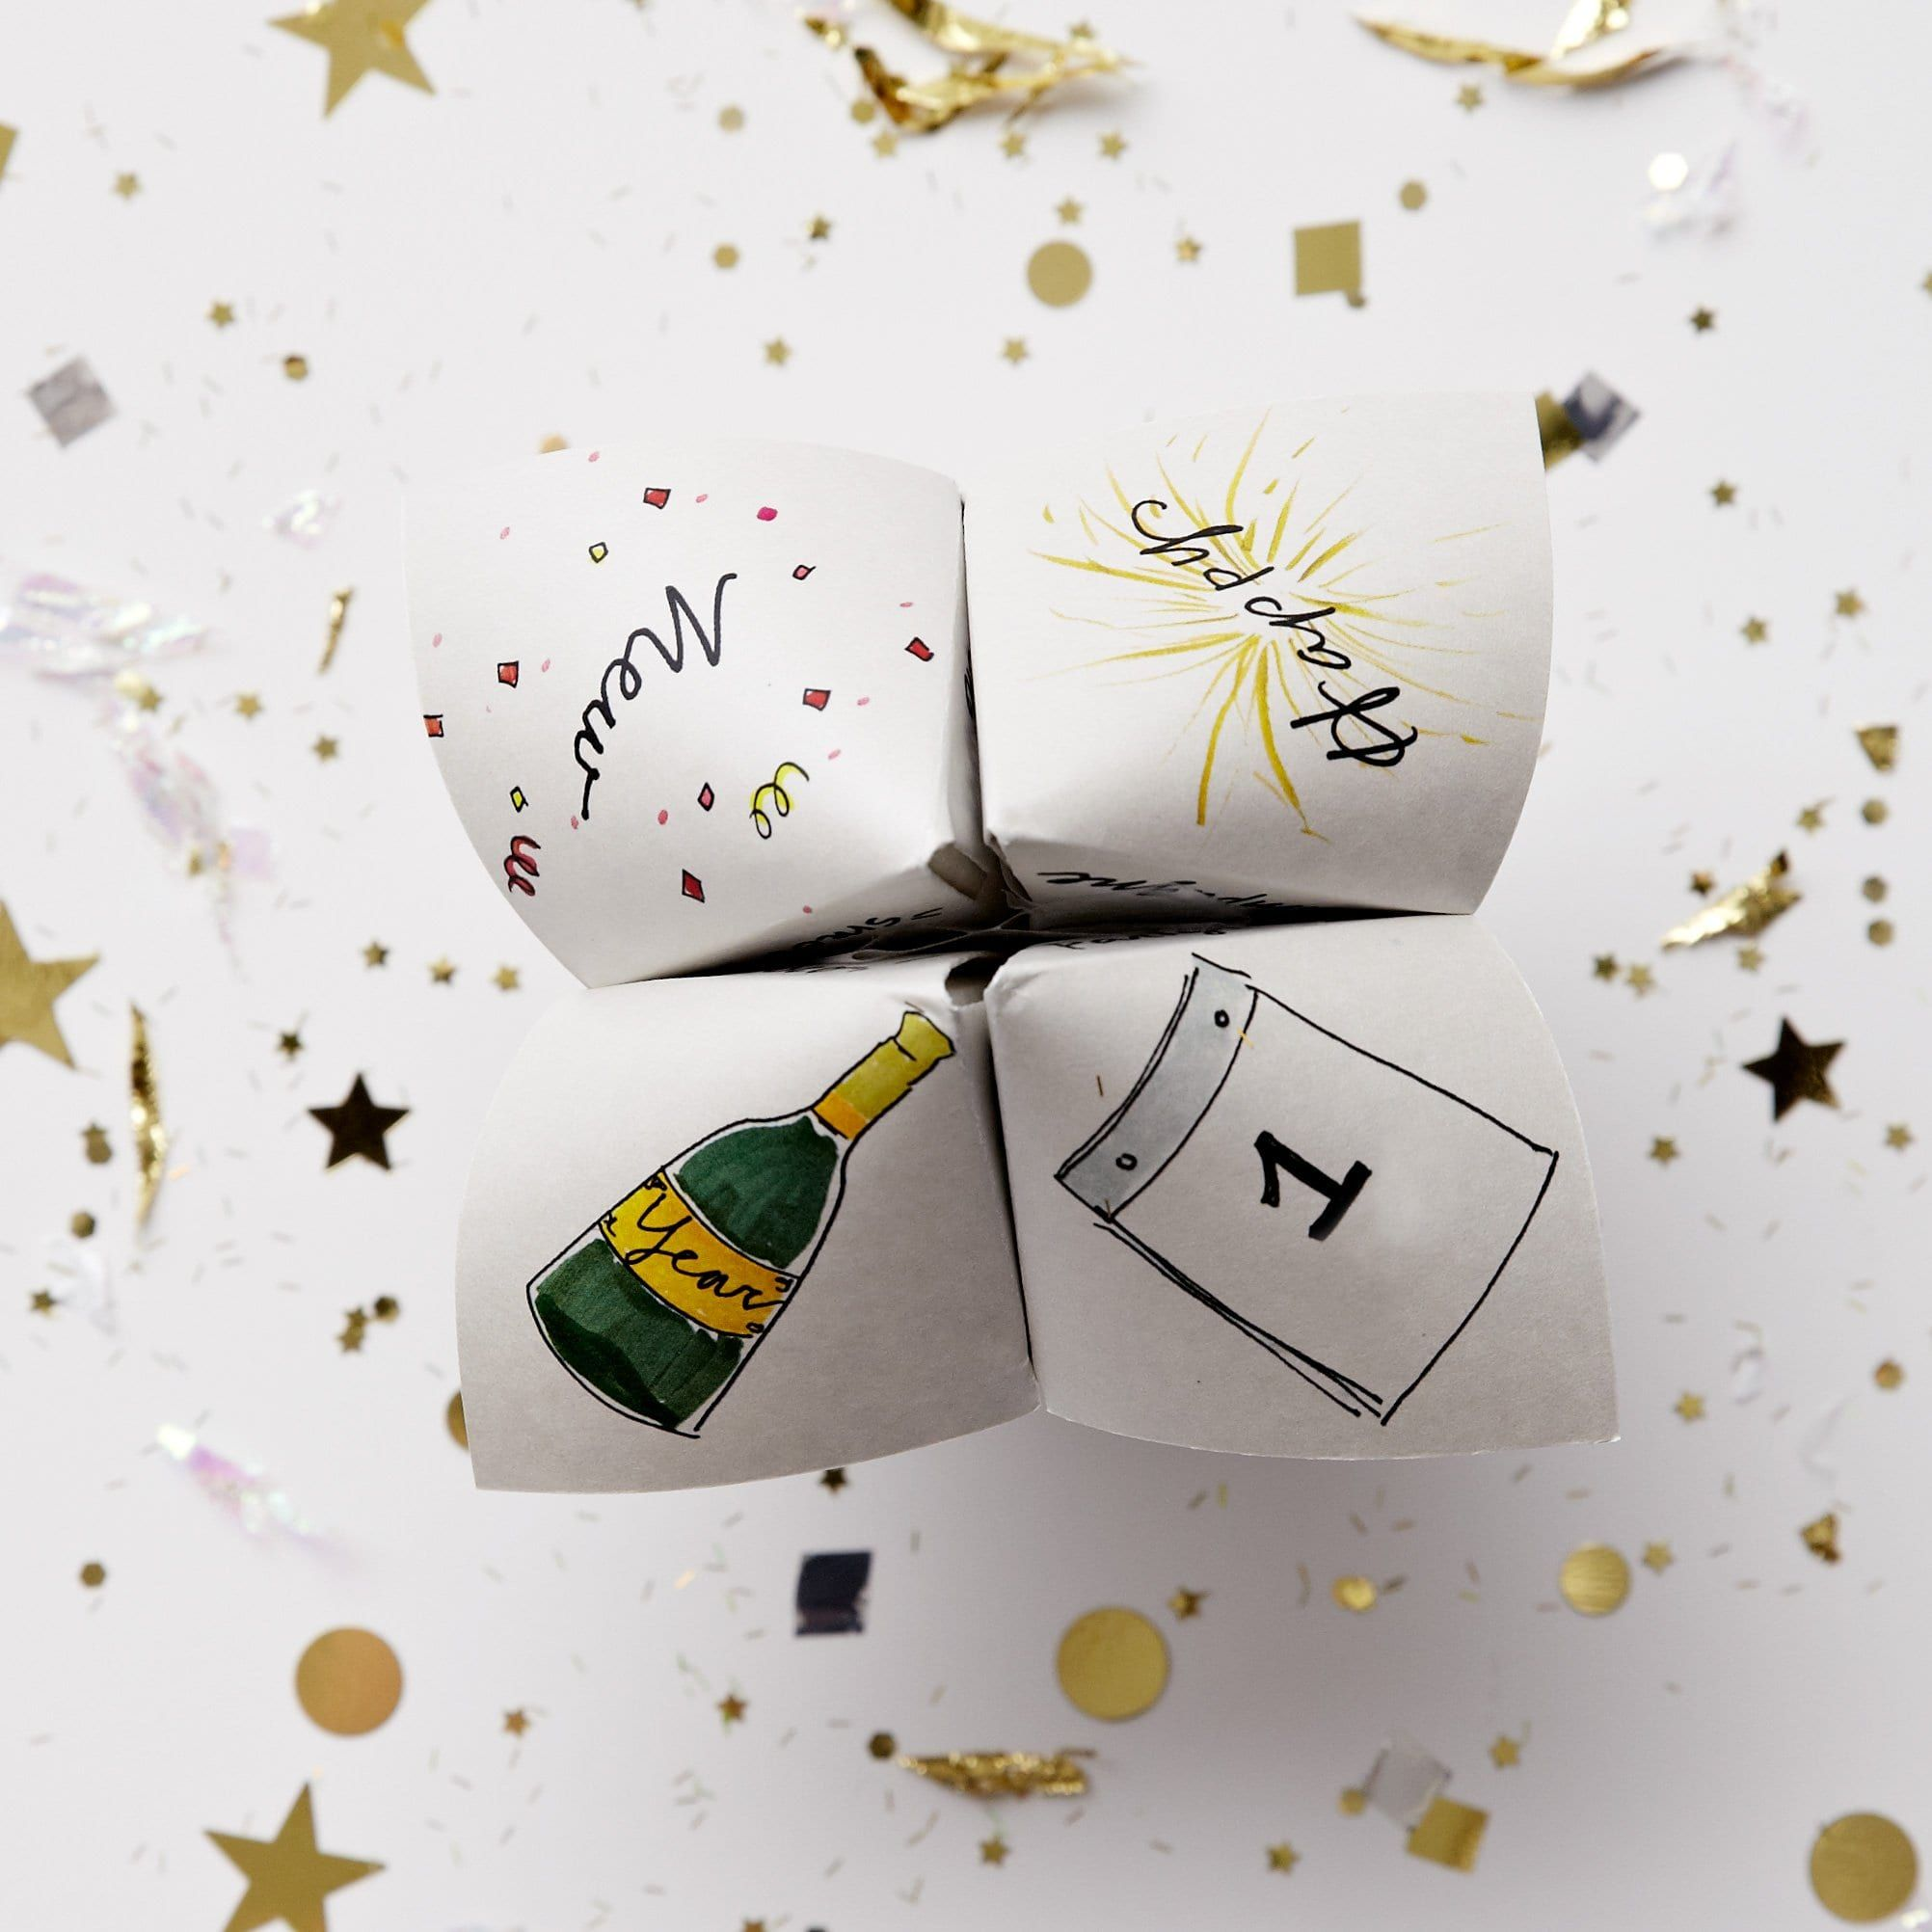 15 New Year's Games for Kids and Adults - Games to Play on New Year's Eve